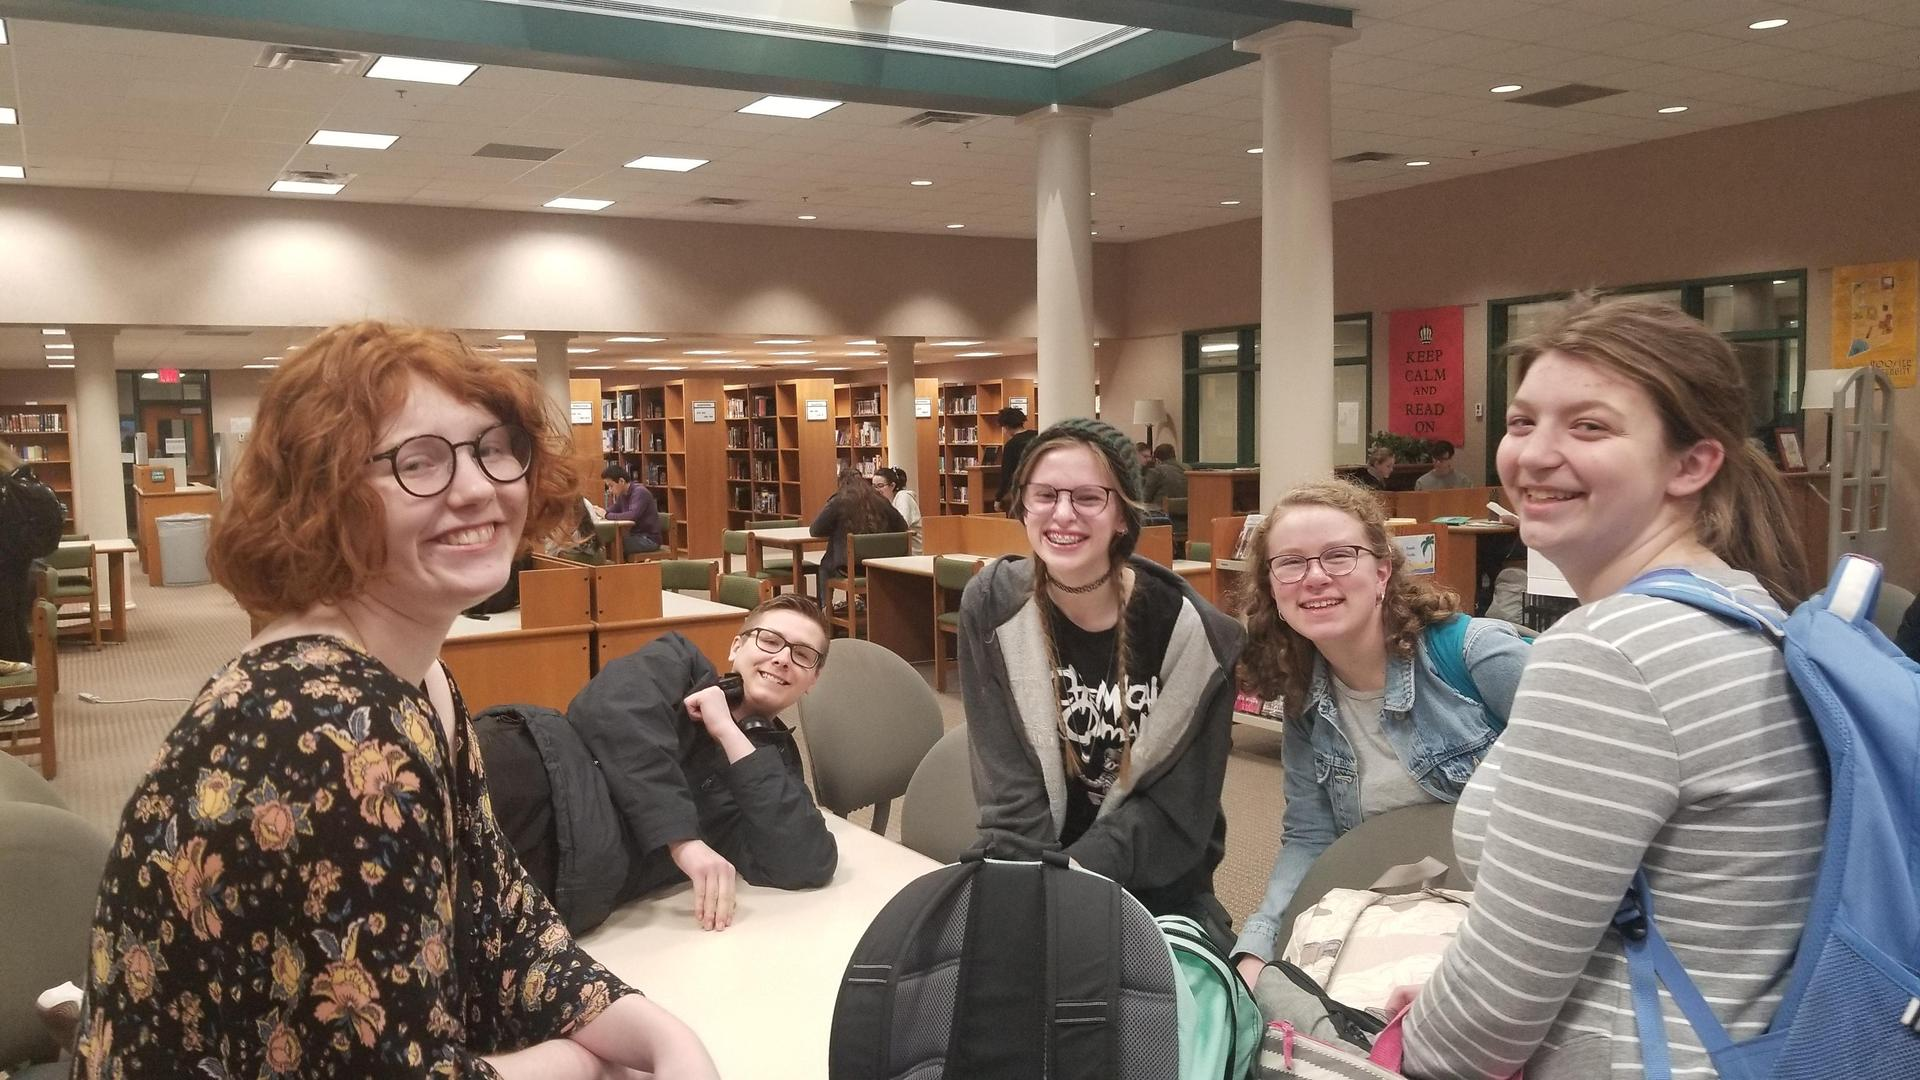 Friends in the media center